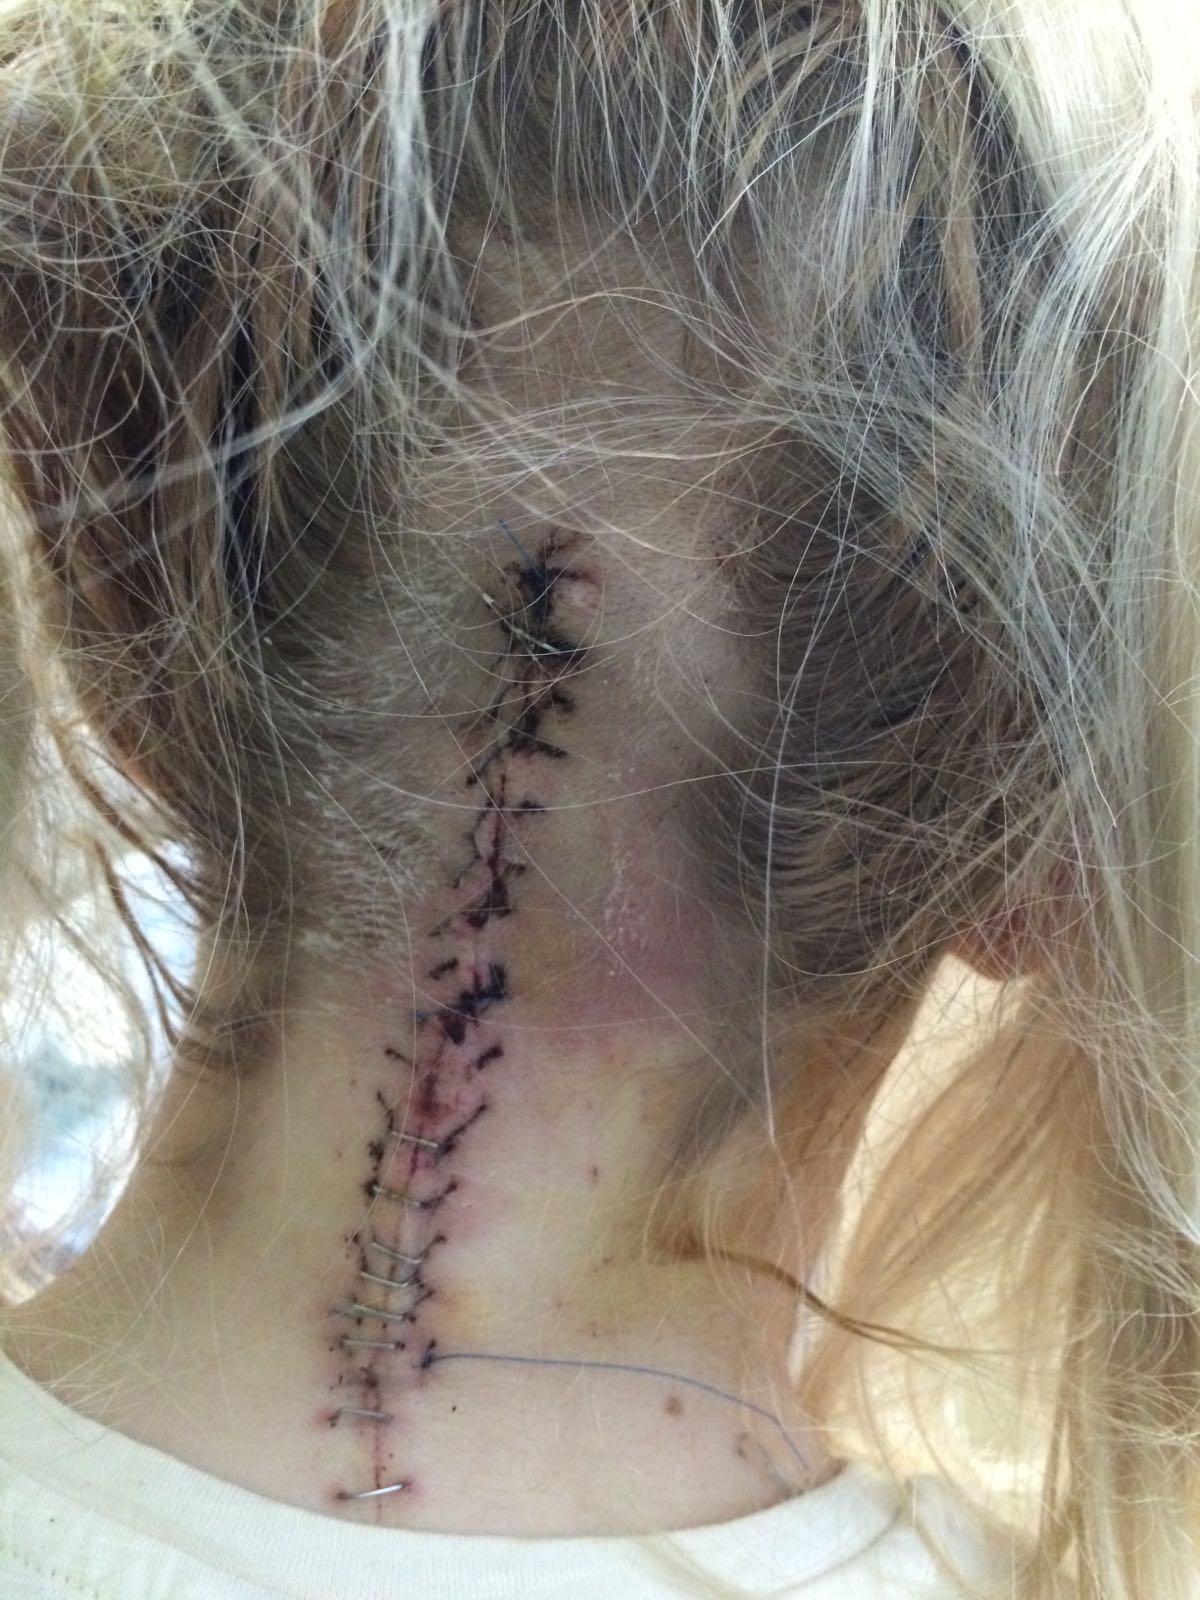 Rebecca's scar from surgery.